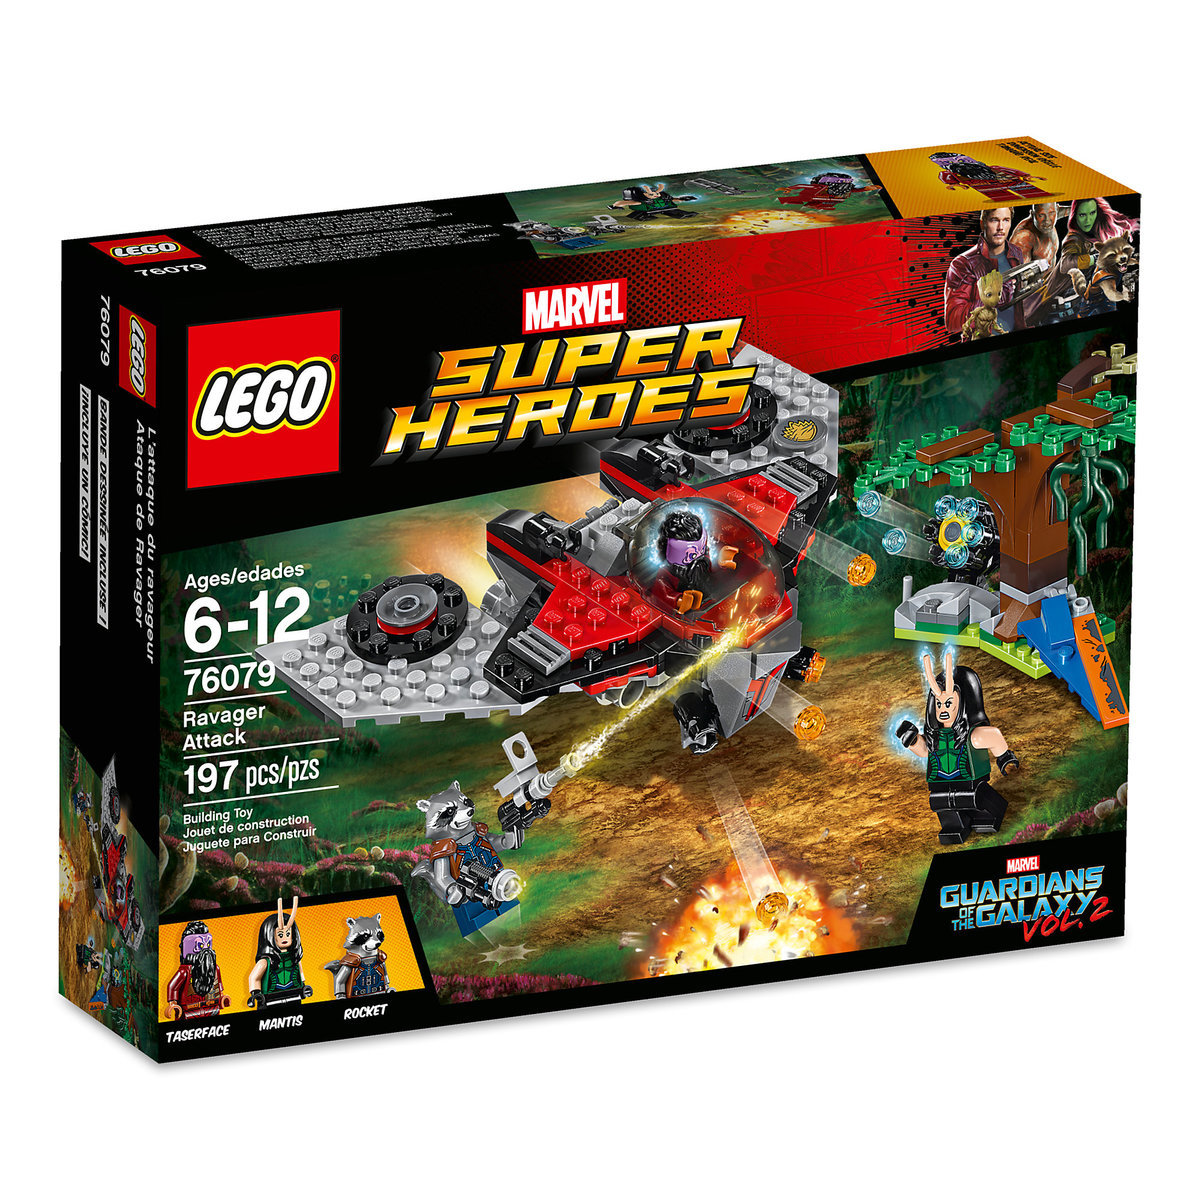 Ravager Attack Playset by LEGO  Guardians of the Galaxy Vol 2